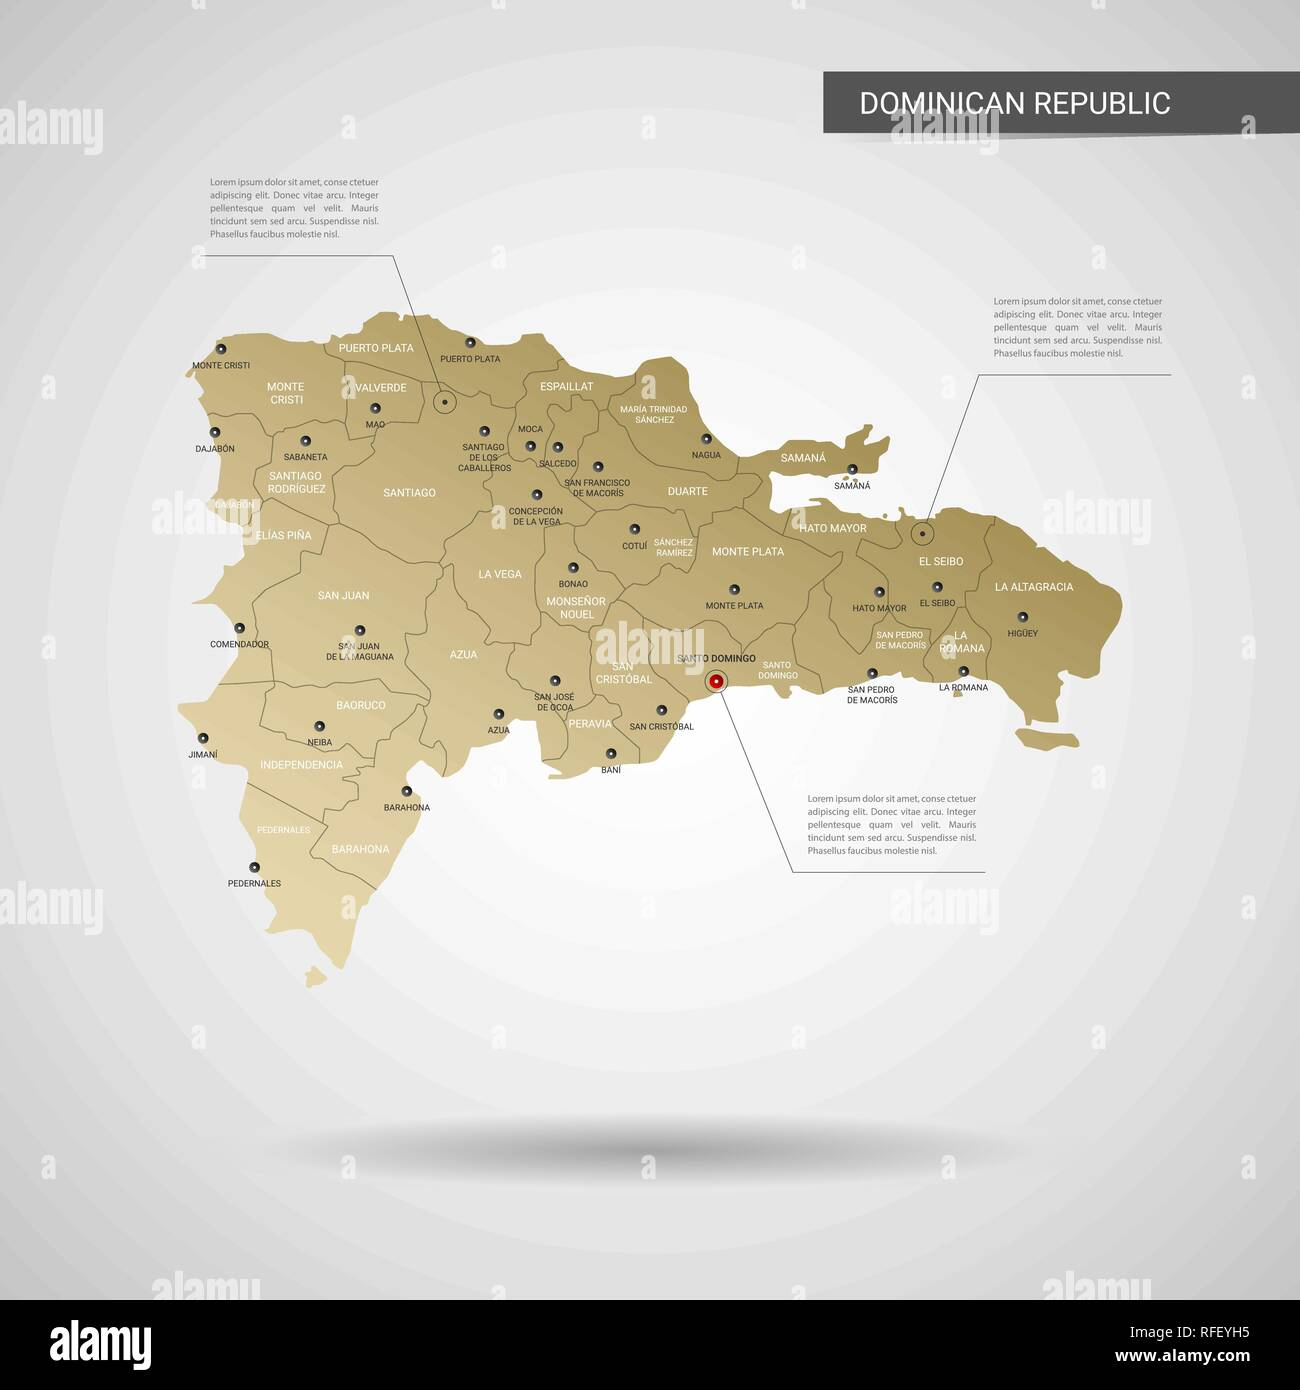 Stylized vector Dominican Republic map. Infographic 3d gold ... on paraguay cities map, rhine river cities map, barbados cities map, trinidad cities map, senegal cities map, bahamas cities map, guam cities map, antarctic cities map, luxembourg cities map, south sudan cities map, serbia cities map, western asia cities map, slovakia cities map, united states of america cities map, latvia cities map, belarus cities map, newfoundland and labrador cities map, nova scotia cities map, chad cities map, tibet cities map,